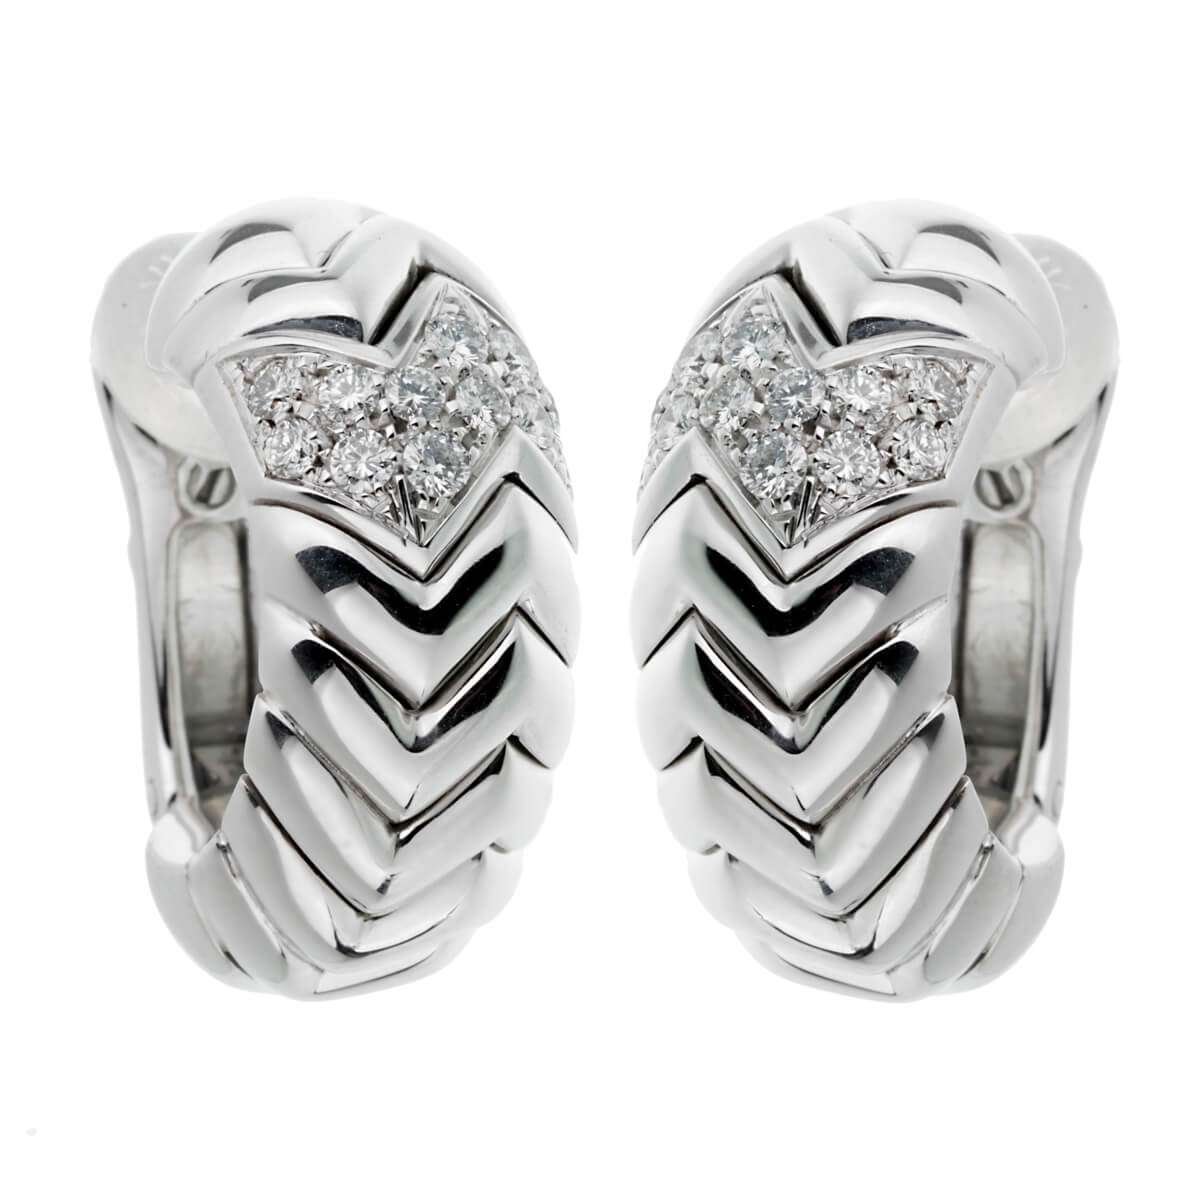 Bulgari Spiga White Gold Diamond Earrings